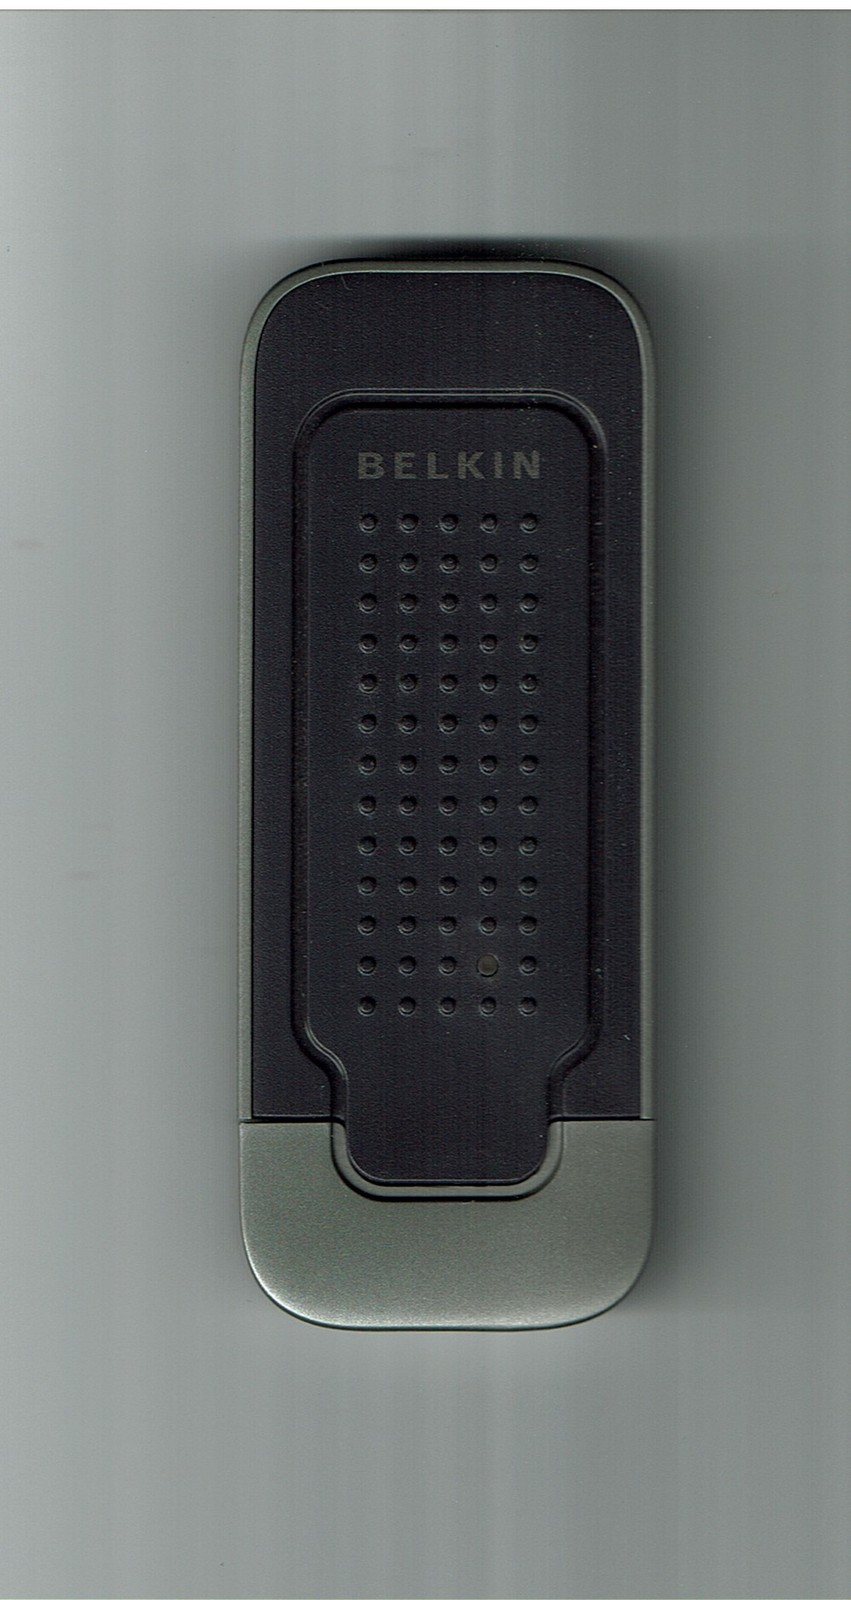 Belkin F5D9050 Wireless G Plus MIMO USB Wi-Fi Network Adapter Dongle